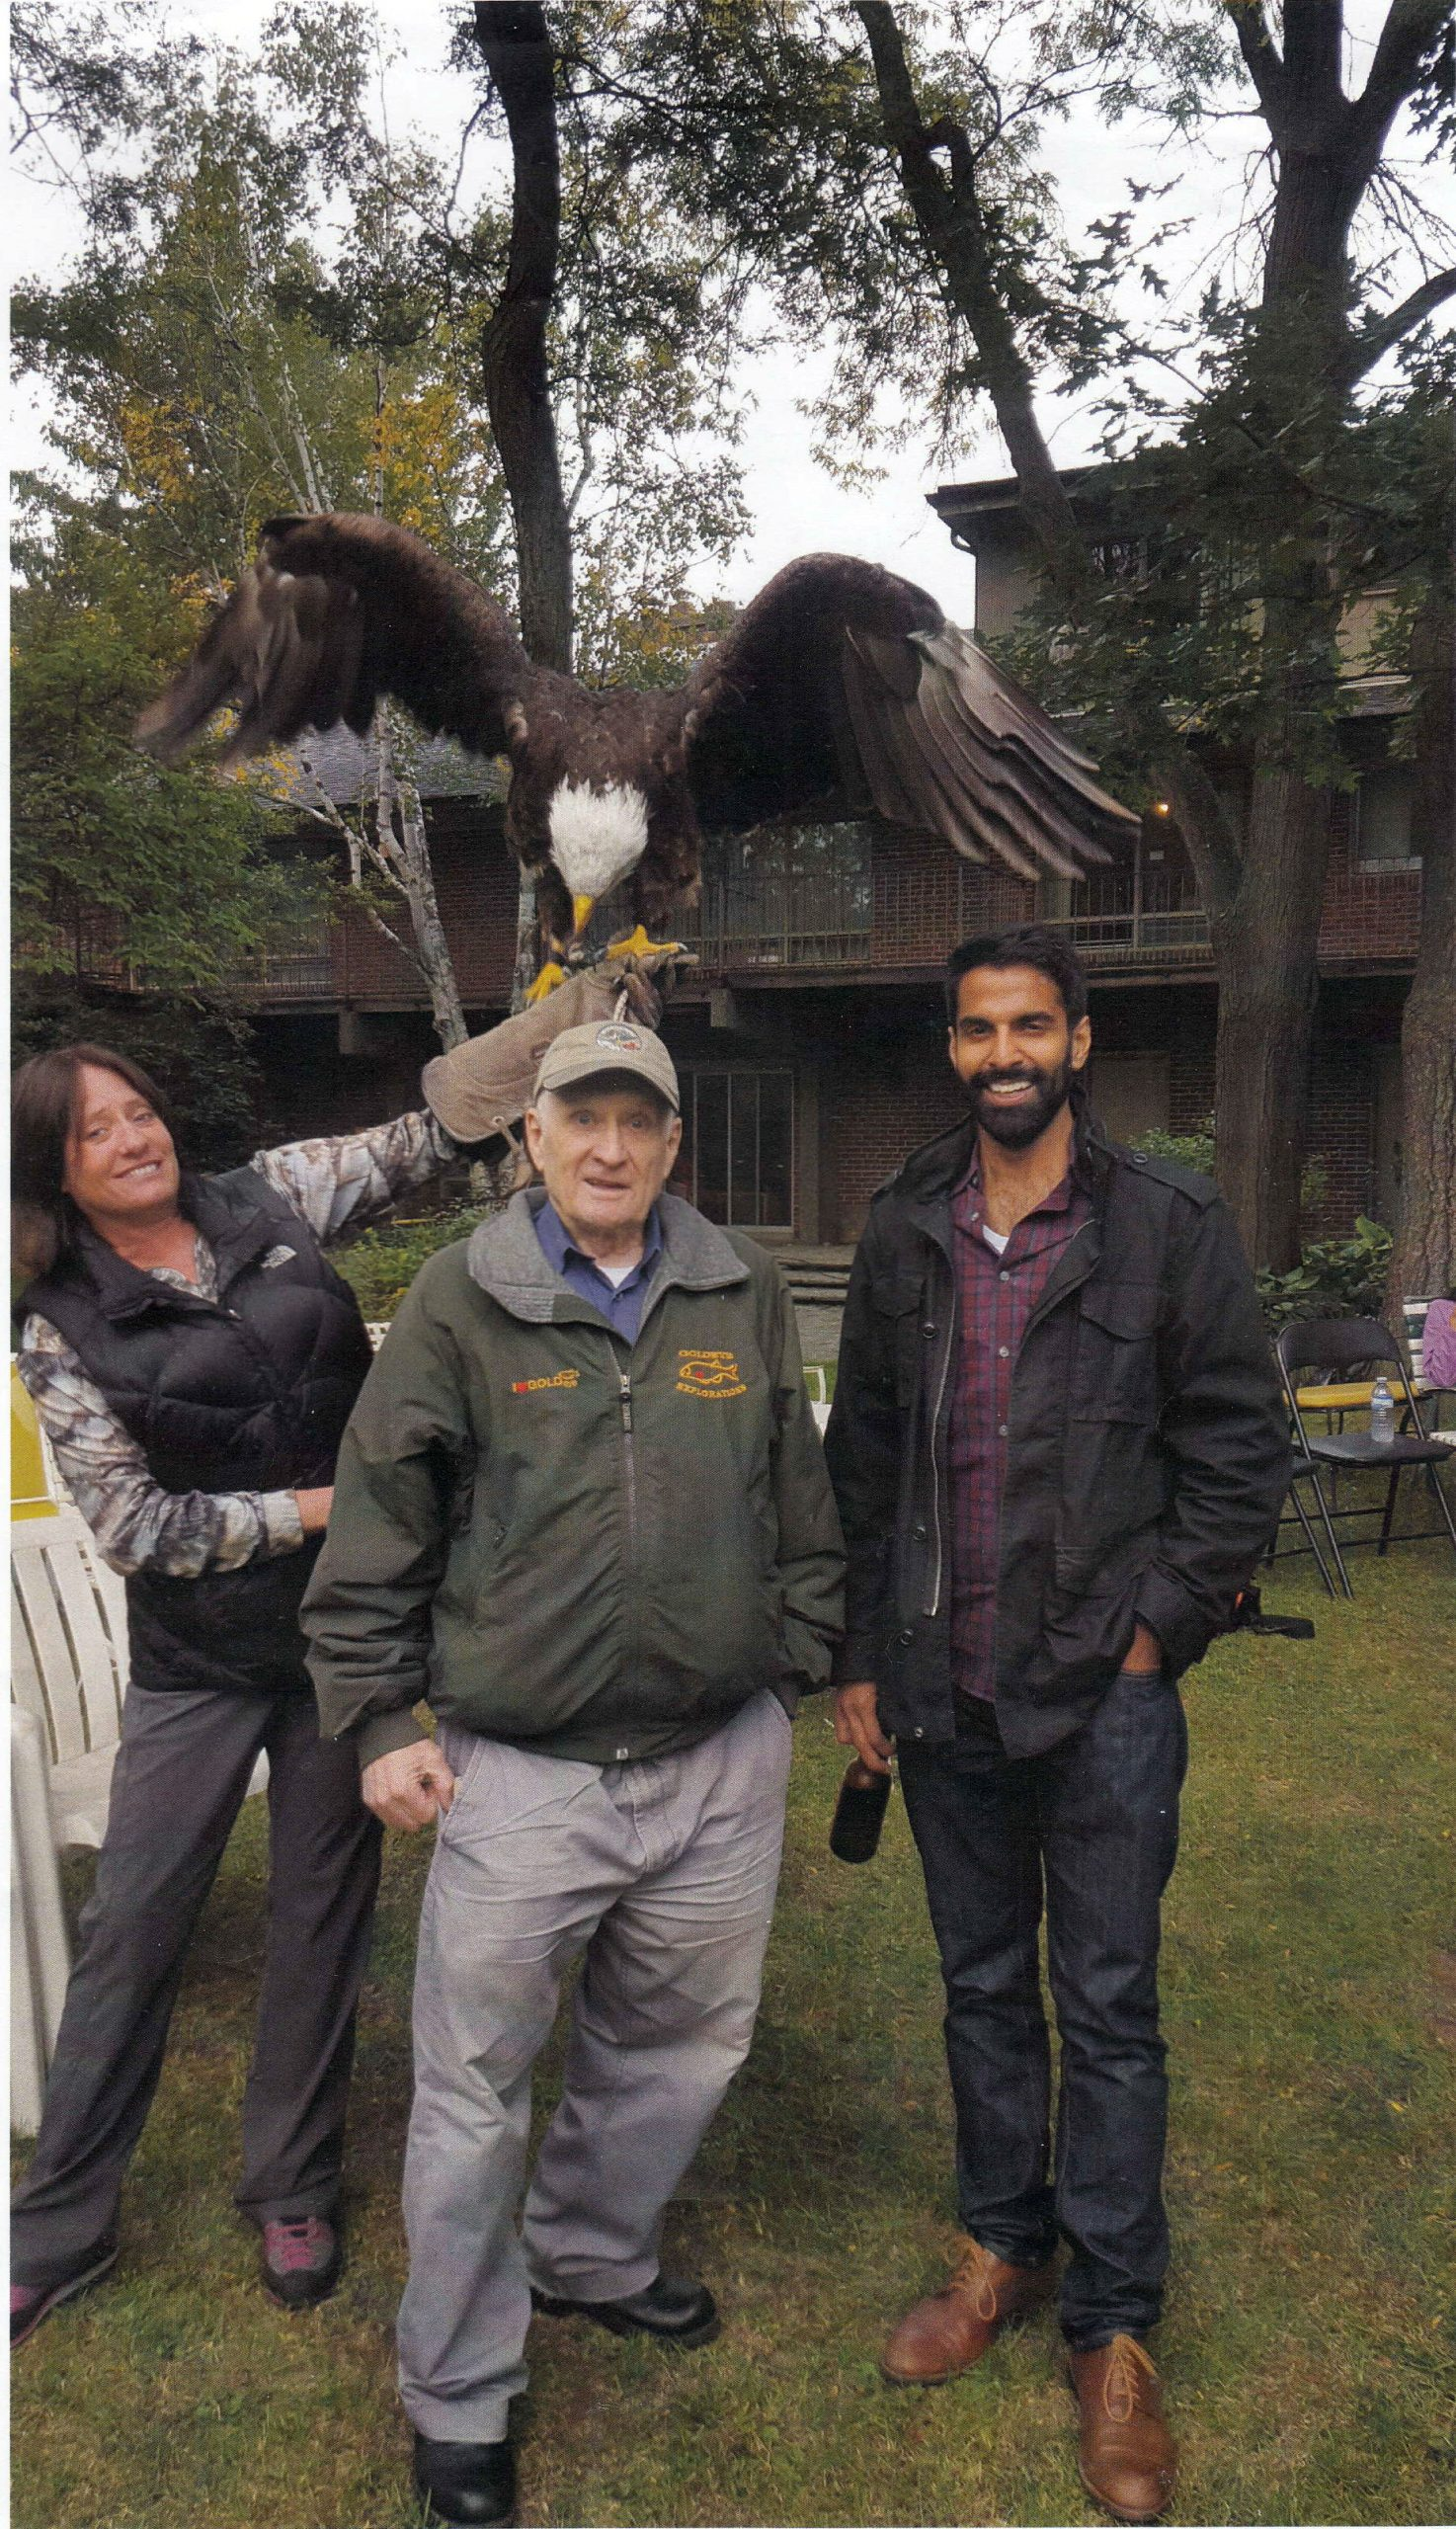 Eagle over the head of Max Juby, in backyard of John Patrick Sheridan residence